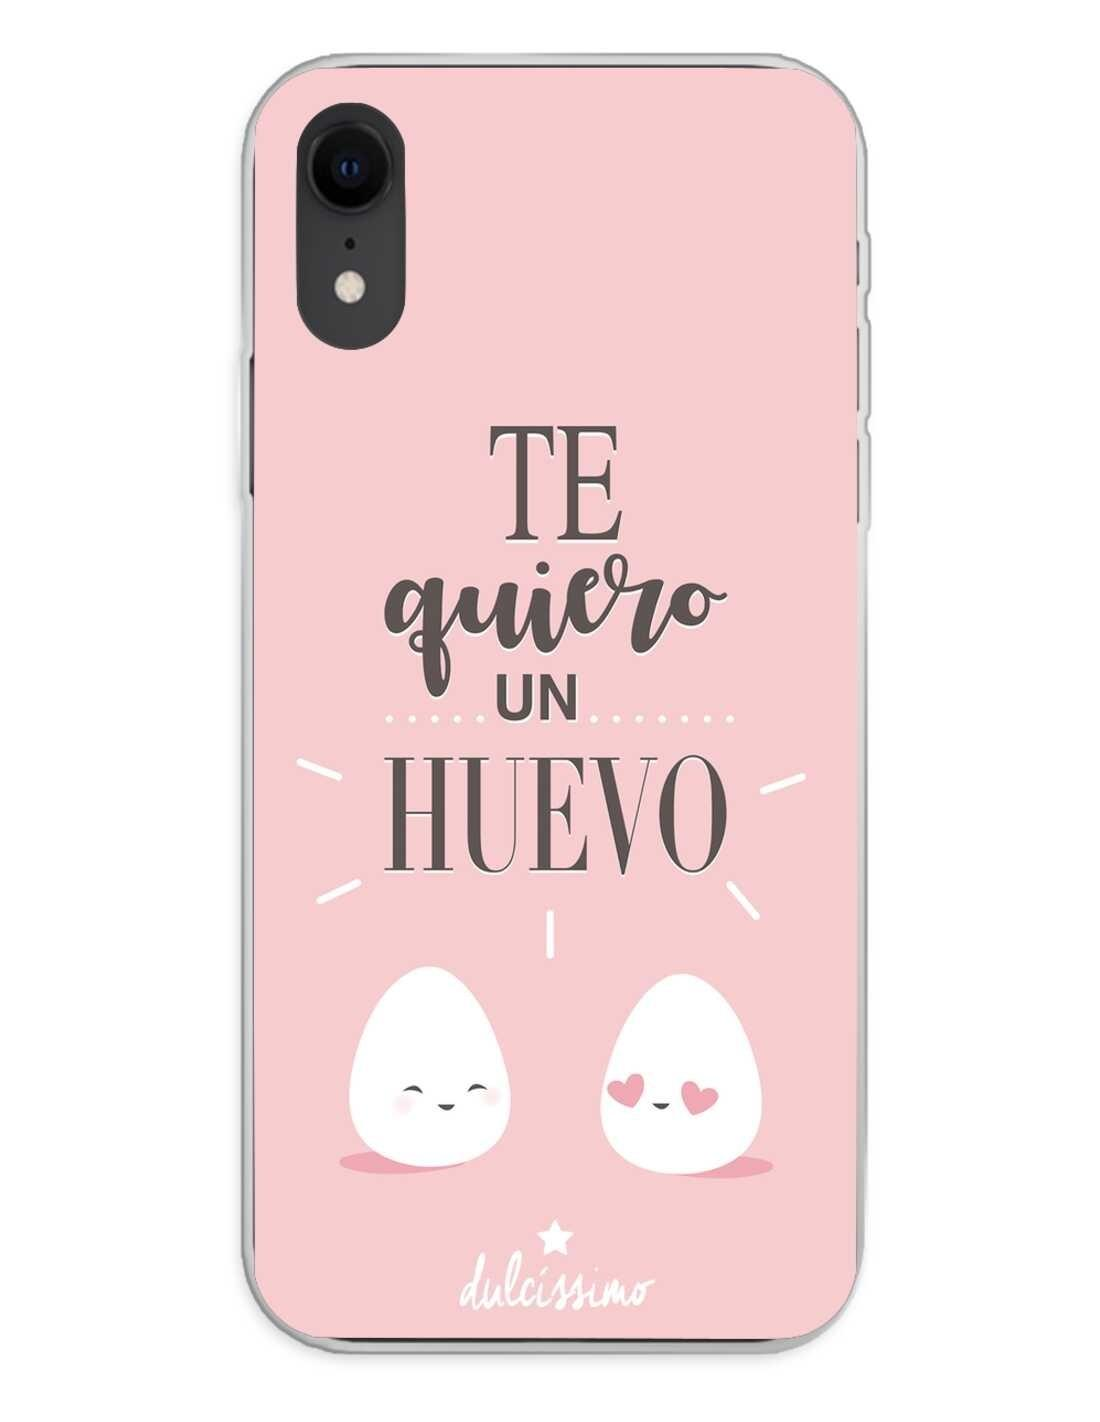 Apple iPhone XR Funda Silicona Dulcissimo Te quiero Un Huevo